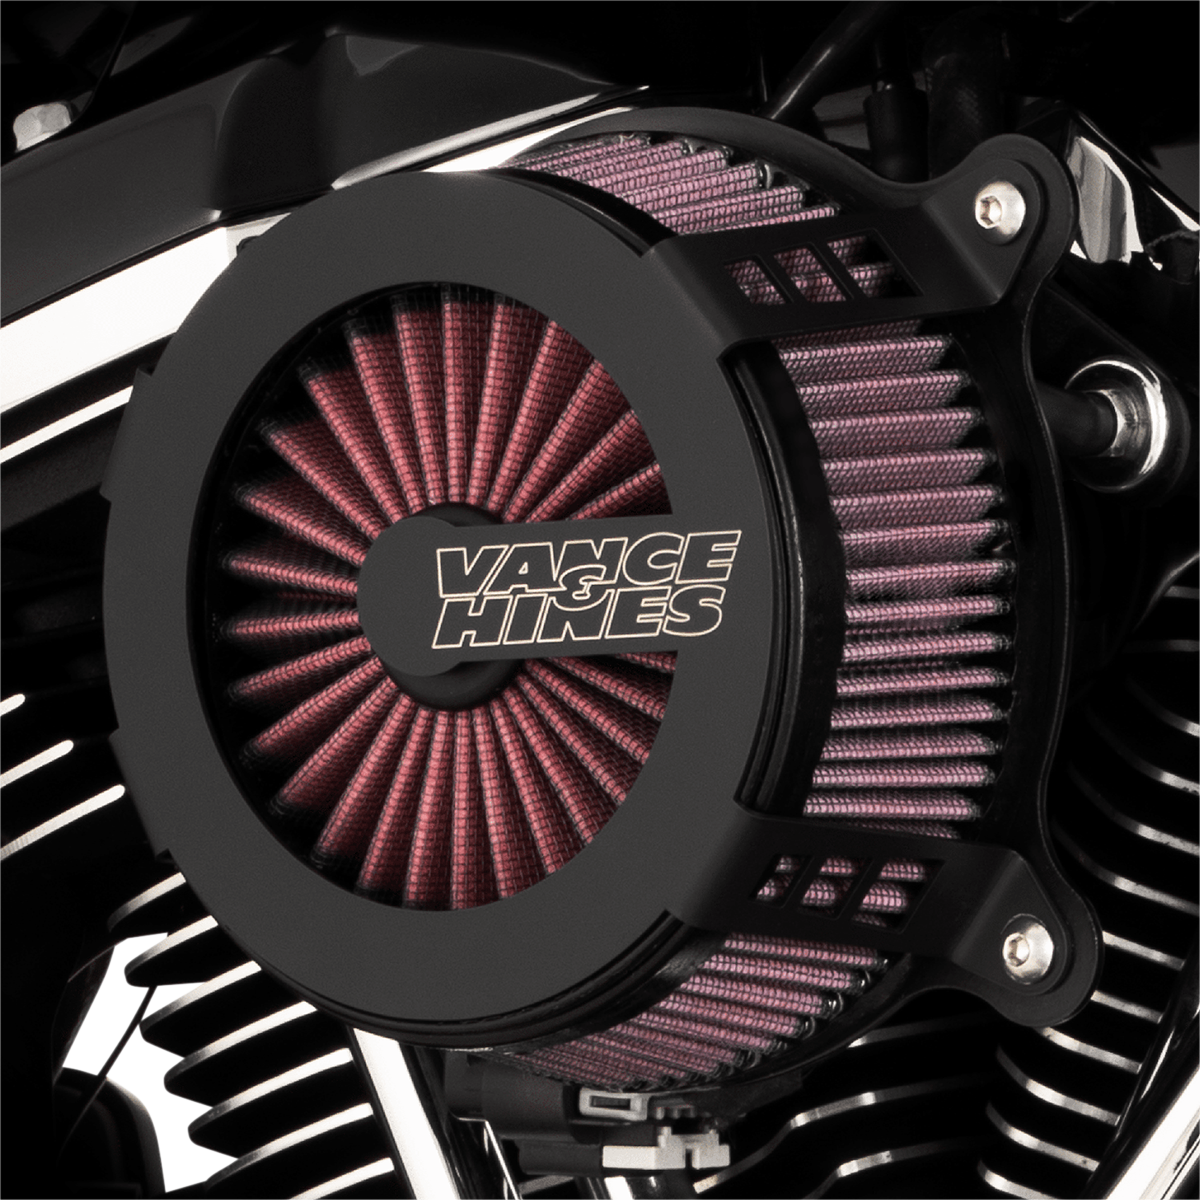 Vance & Hines VO2 Cage Fighter Air Filter Cleaner Kit 2017-2021 Harley Touring